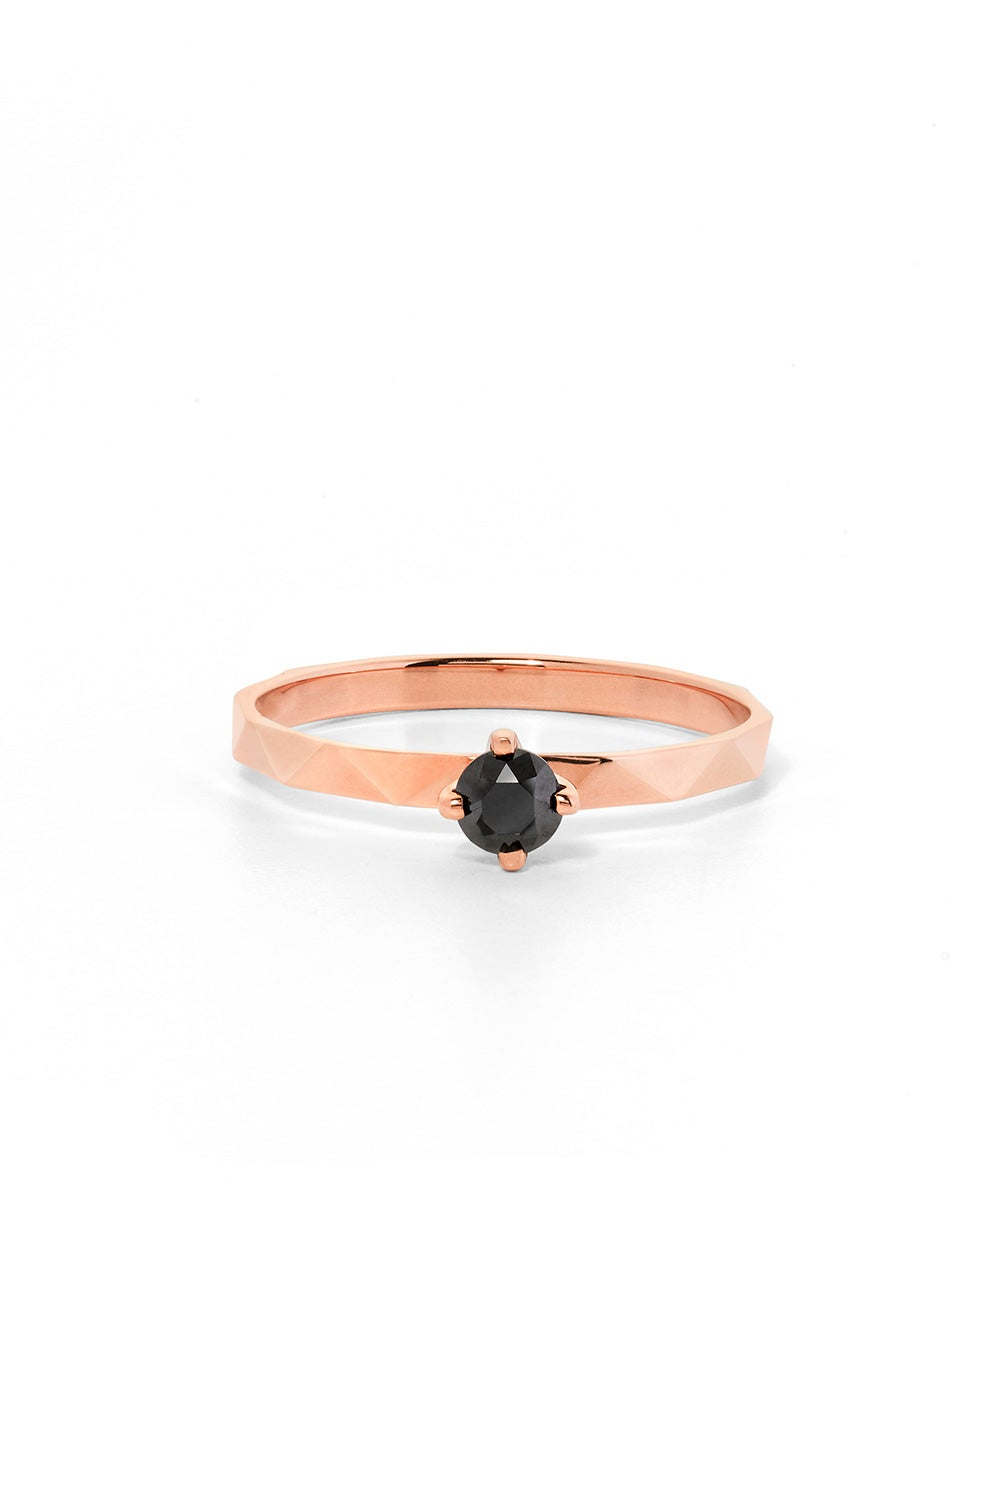 Believer Ring, Rose Gold, Black Diamond